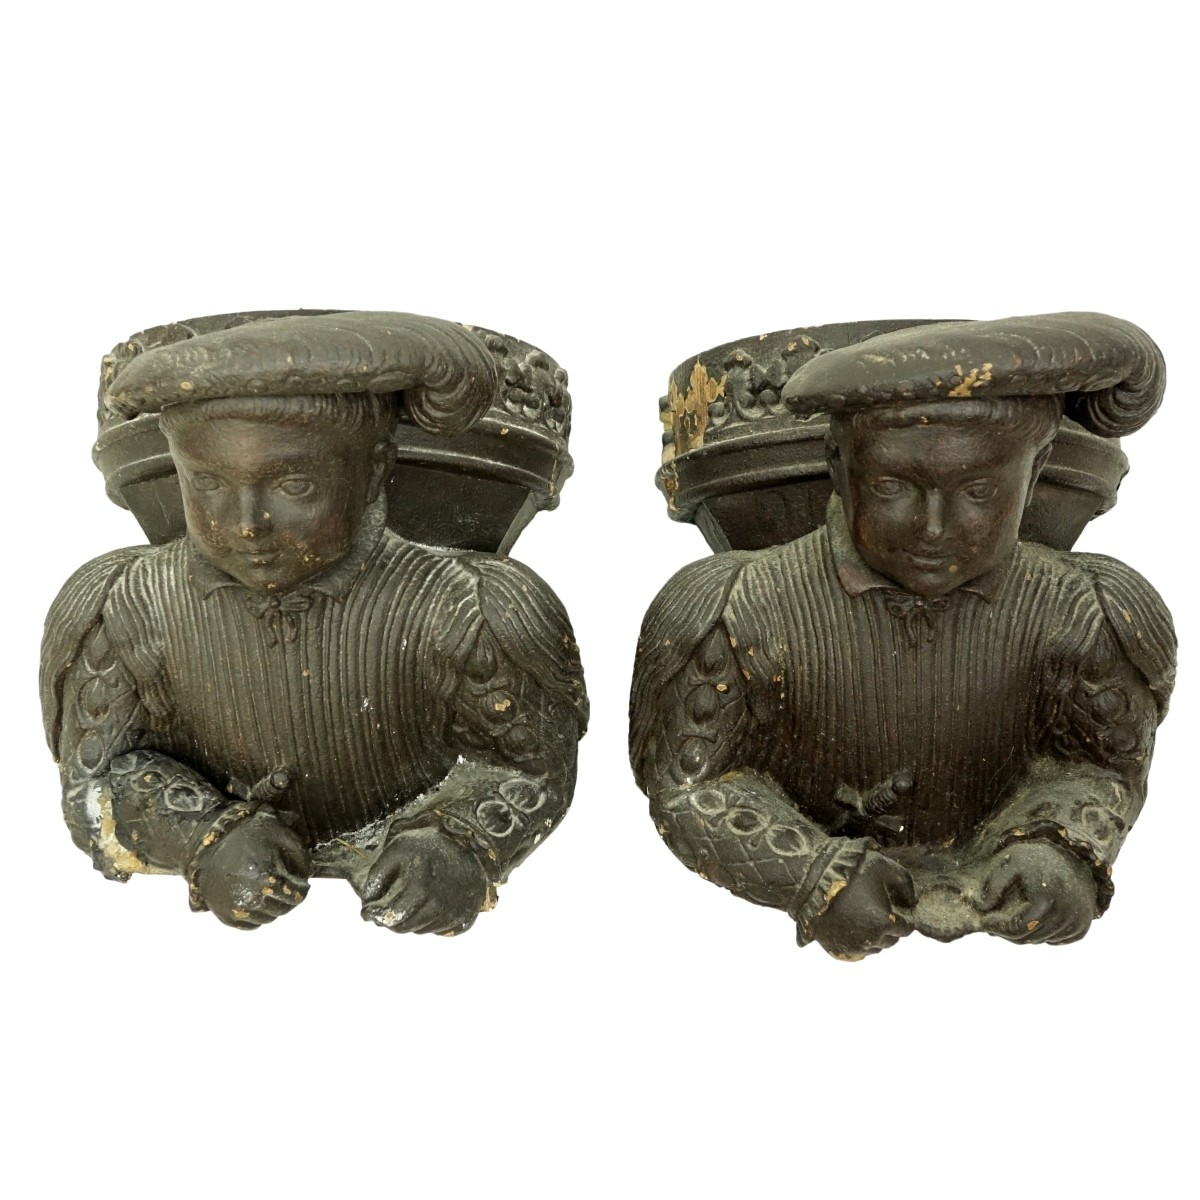 Pair of Carved Wood Tudor Style Figural Corbels